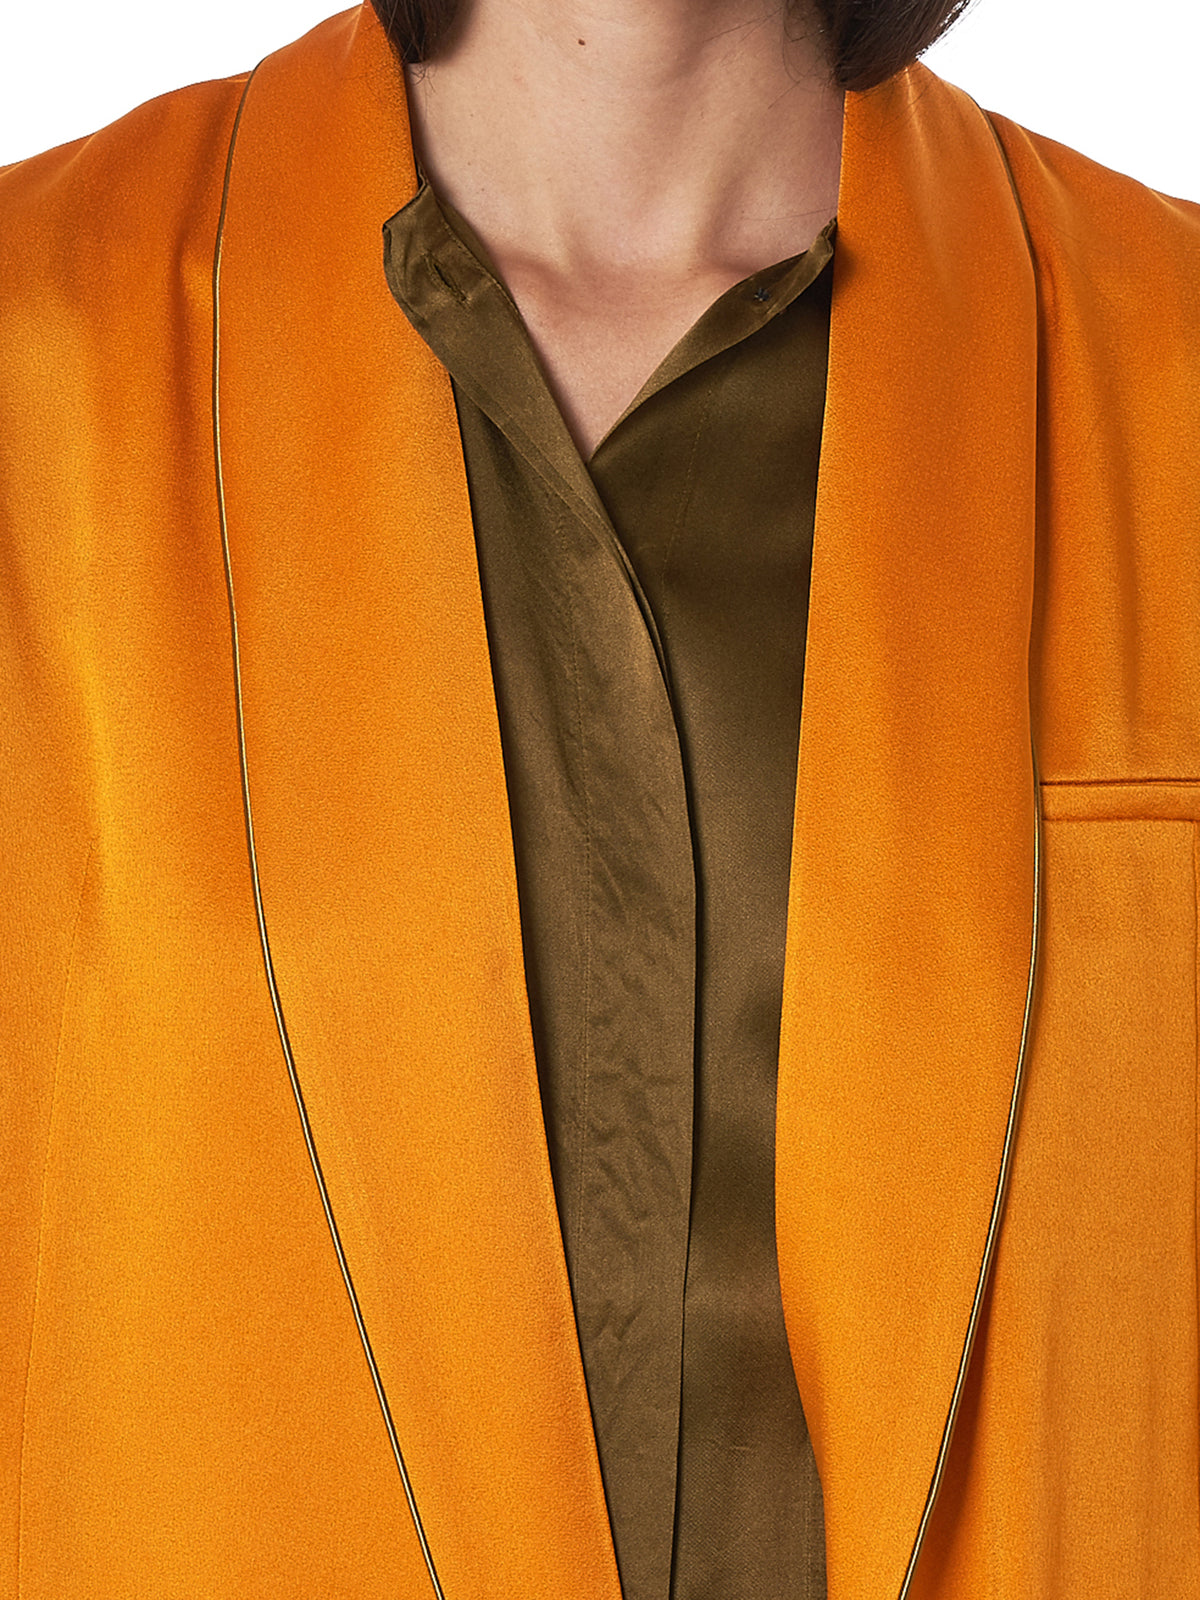 Haider Ackermann Orange Coat - Hlorenzo Detail 2